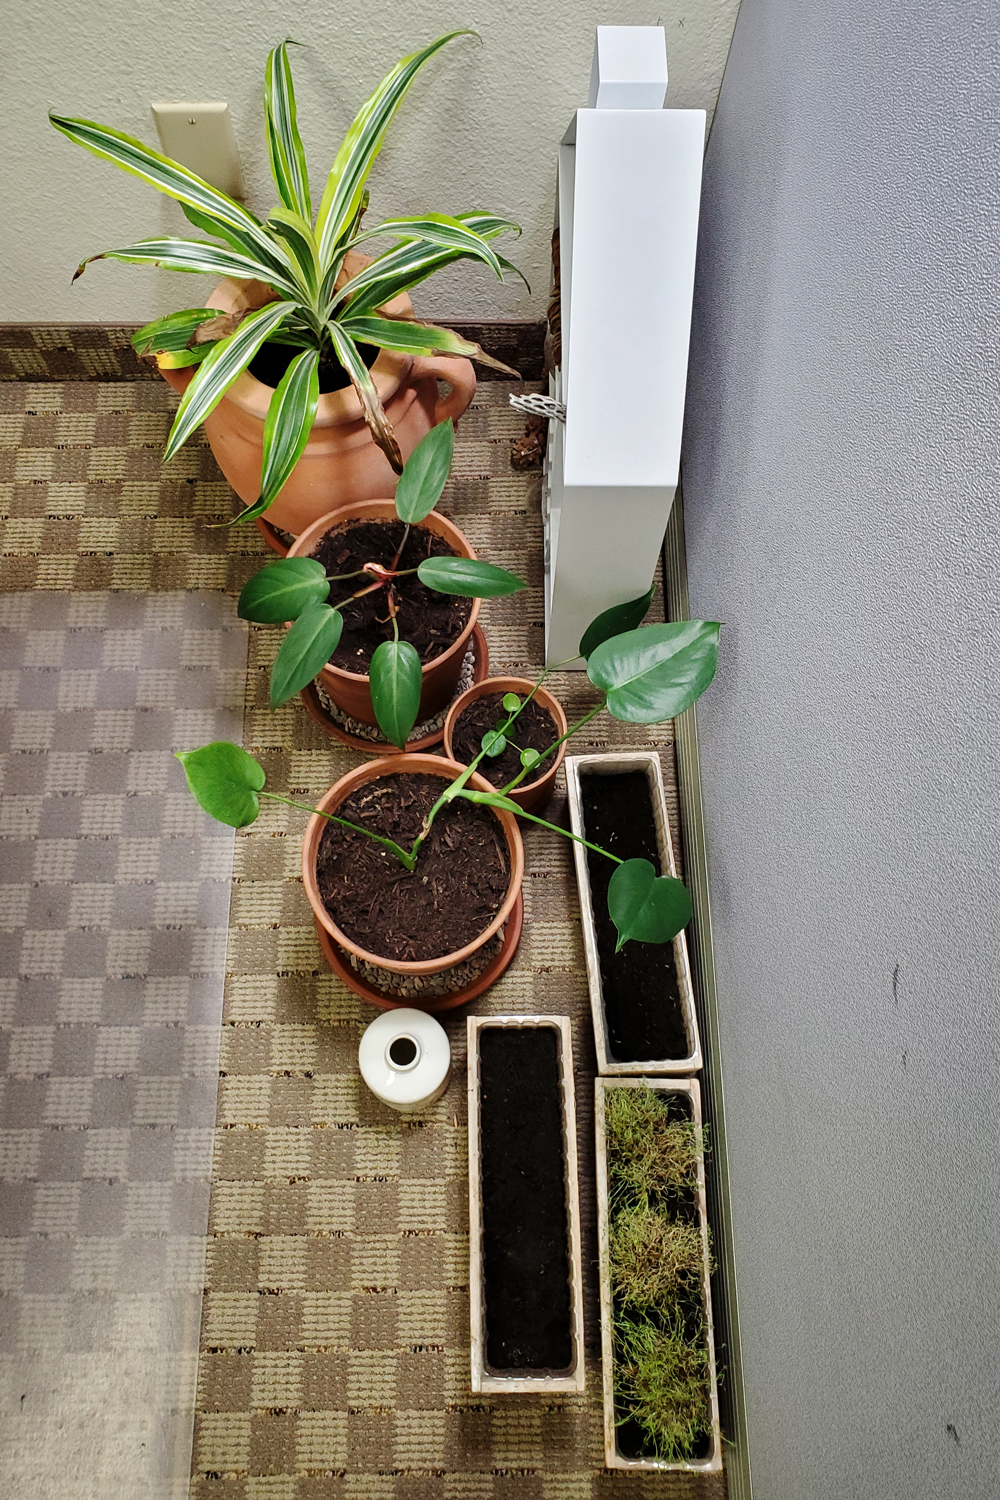 The plants hiding behind the corner of my desk